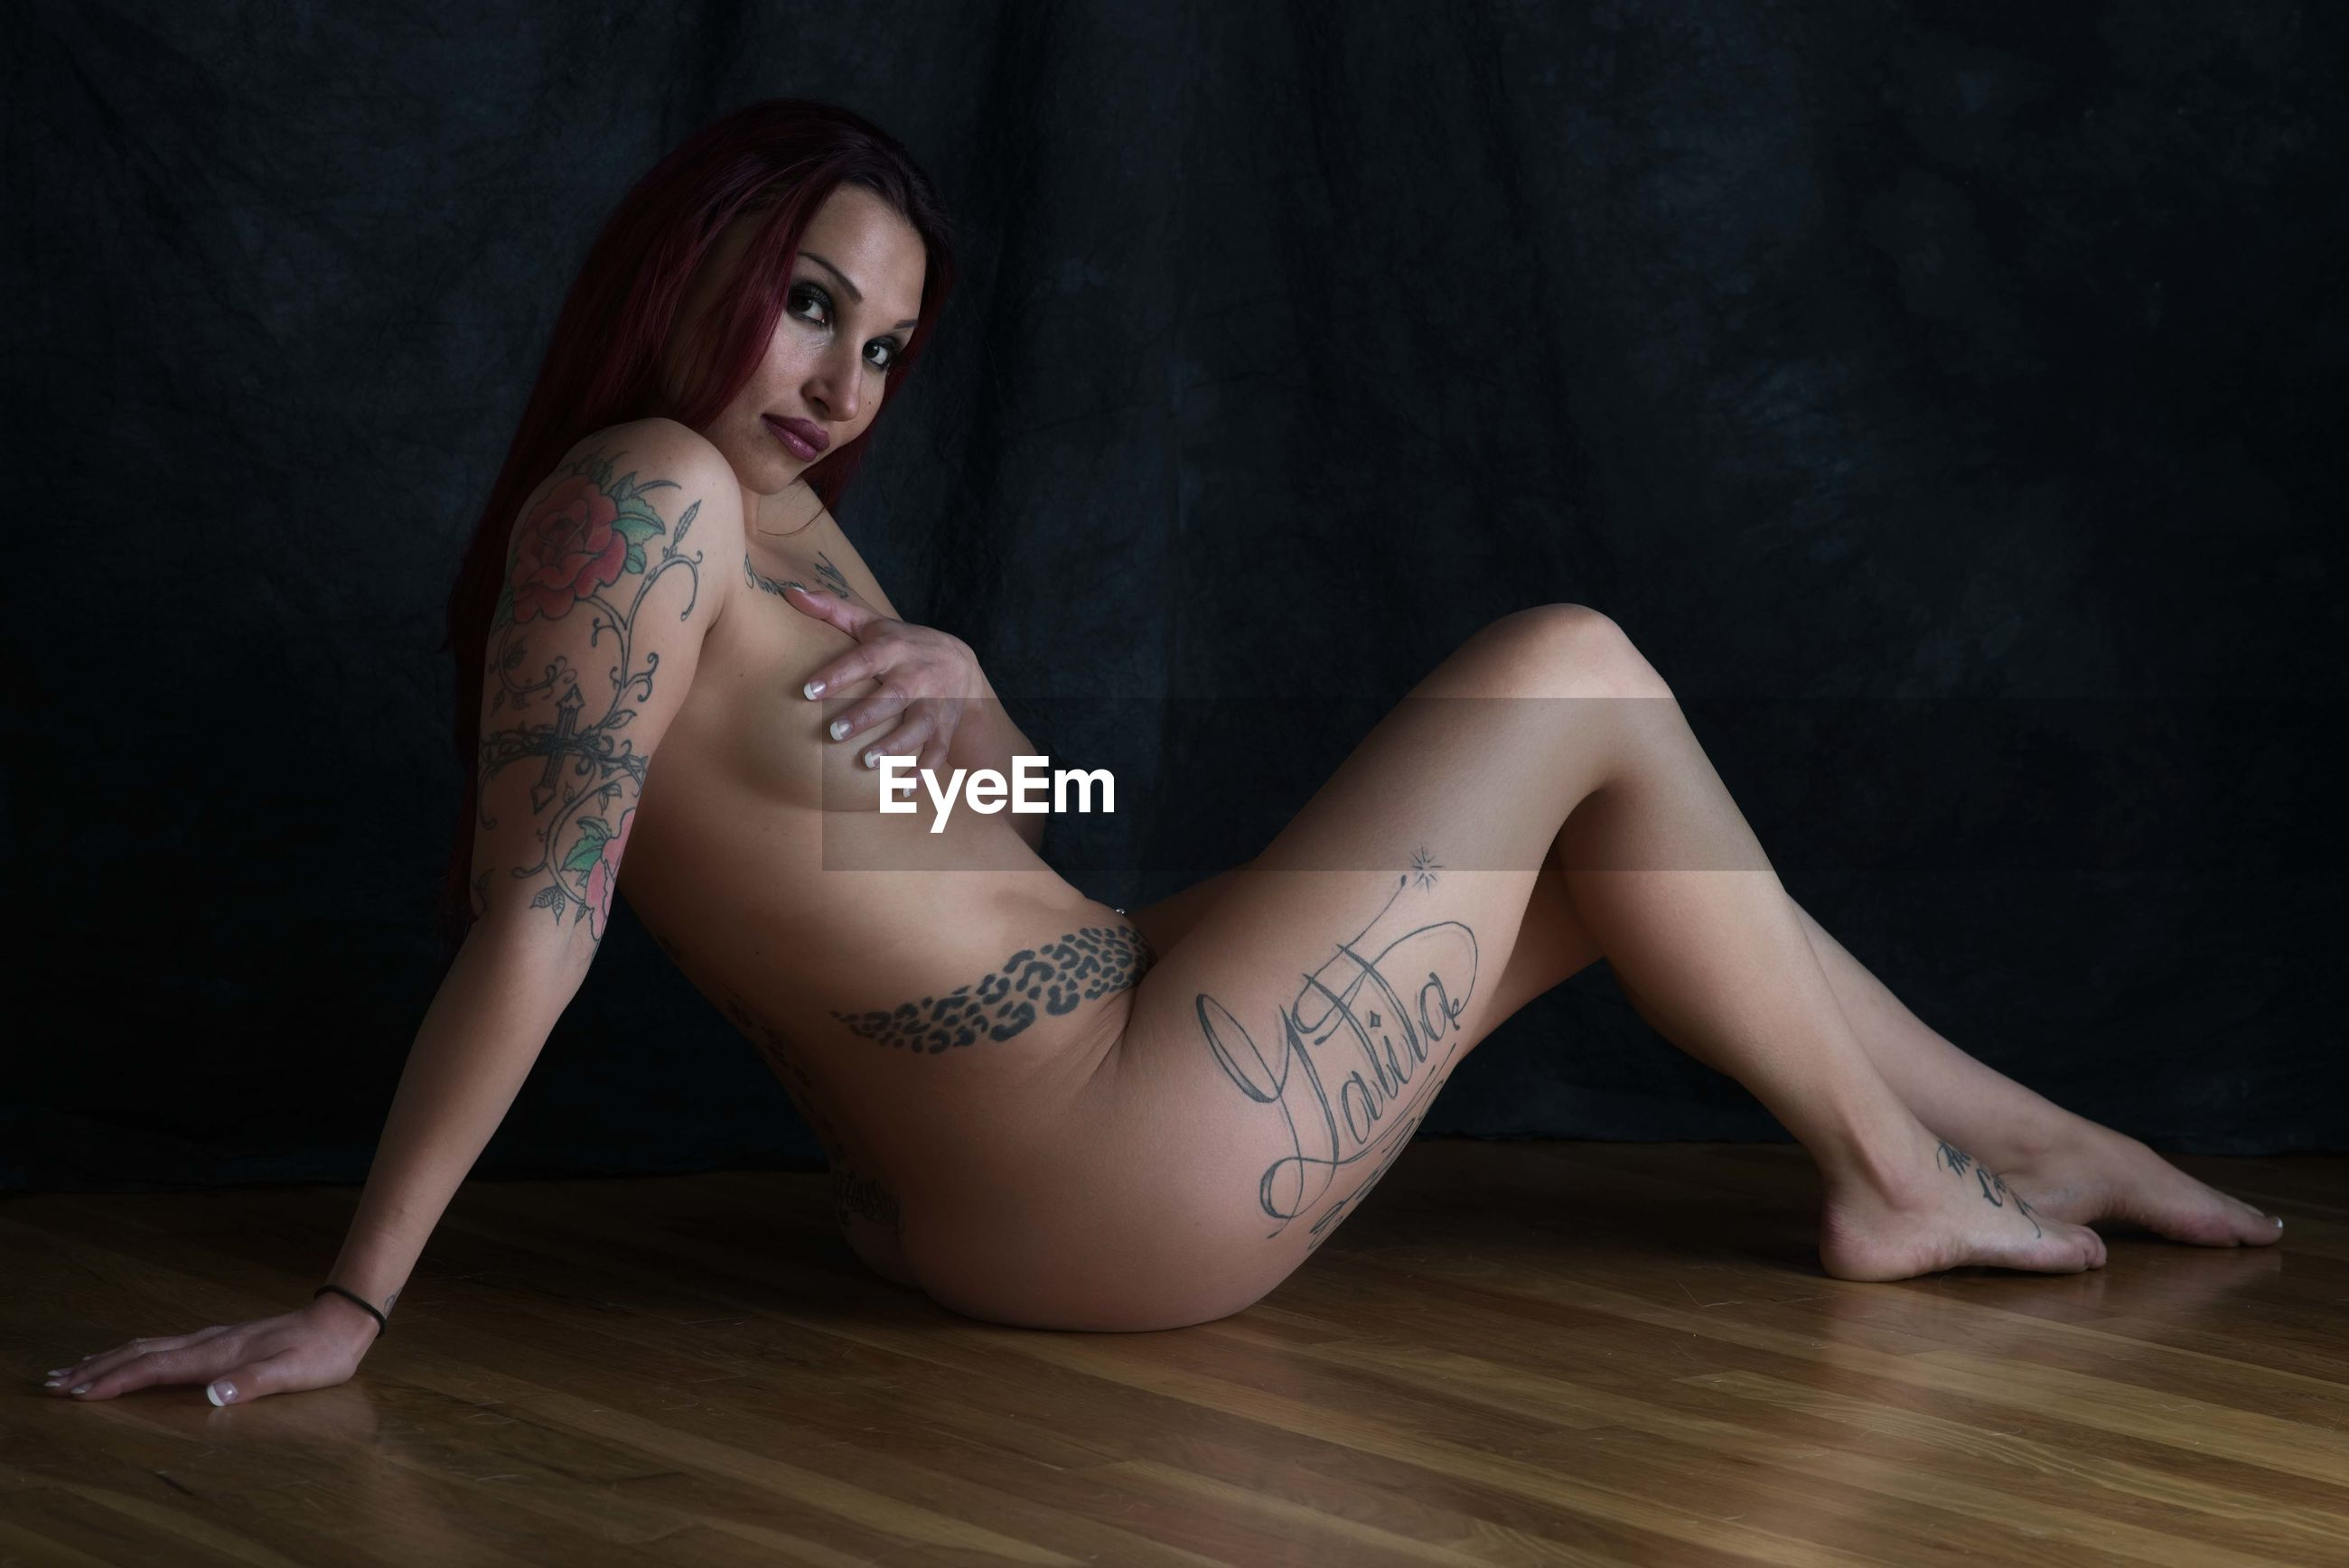 young adult, young women, tattoo, indoors, one person, women, beautiful woman, sitting, beauty, lifestyles, adult, real people, full length, portrait, fashion, leisure activity, flooring, hairstyle, wood, lingerie